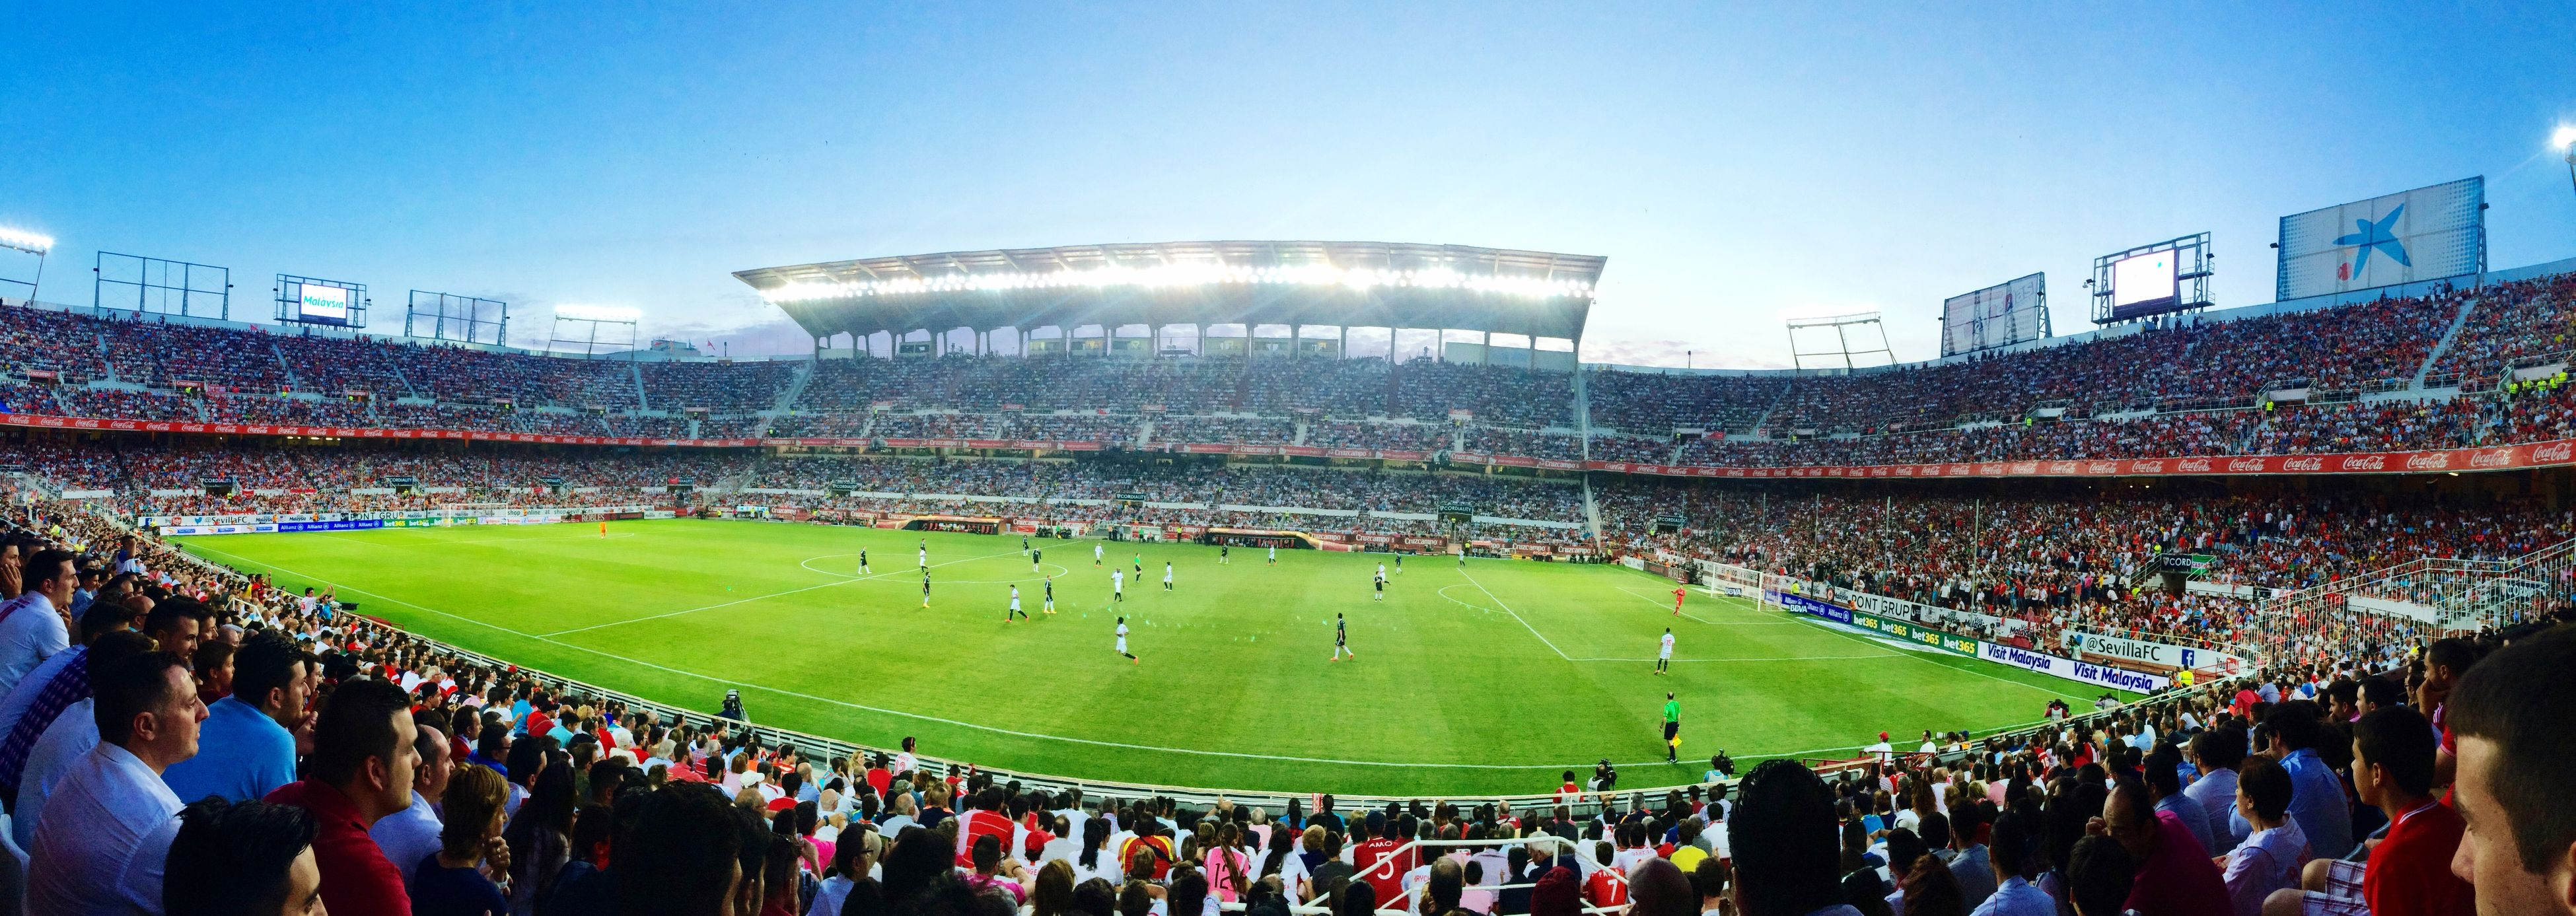 large group of people, crowd, person, men, lifestyles, leisure activity, mixed age range, spectator, stadium, arts culture and entertainment, enjoyment, fun, tourist, watching, blue, event, sky, illuminated